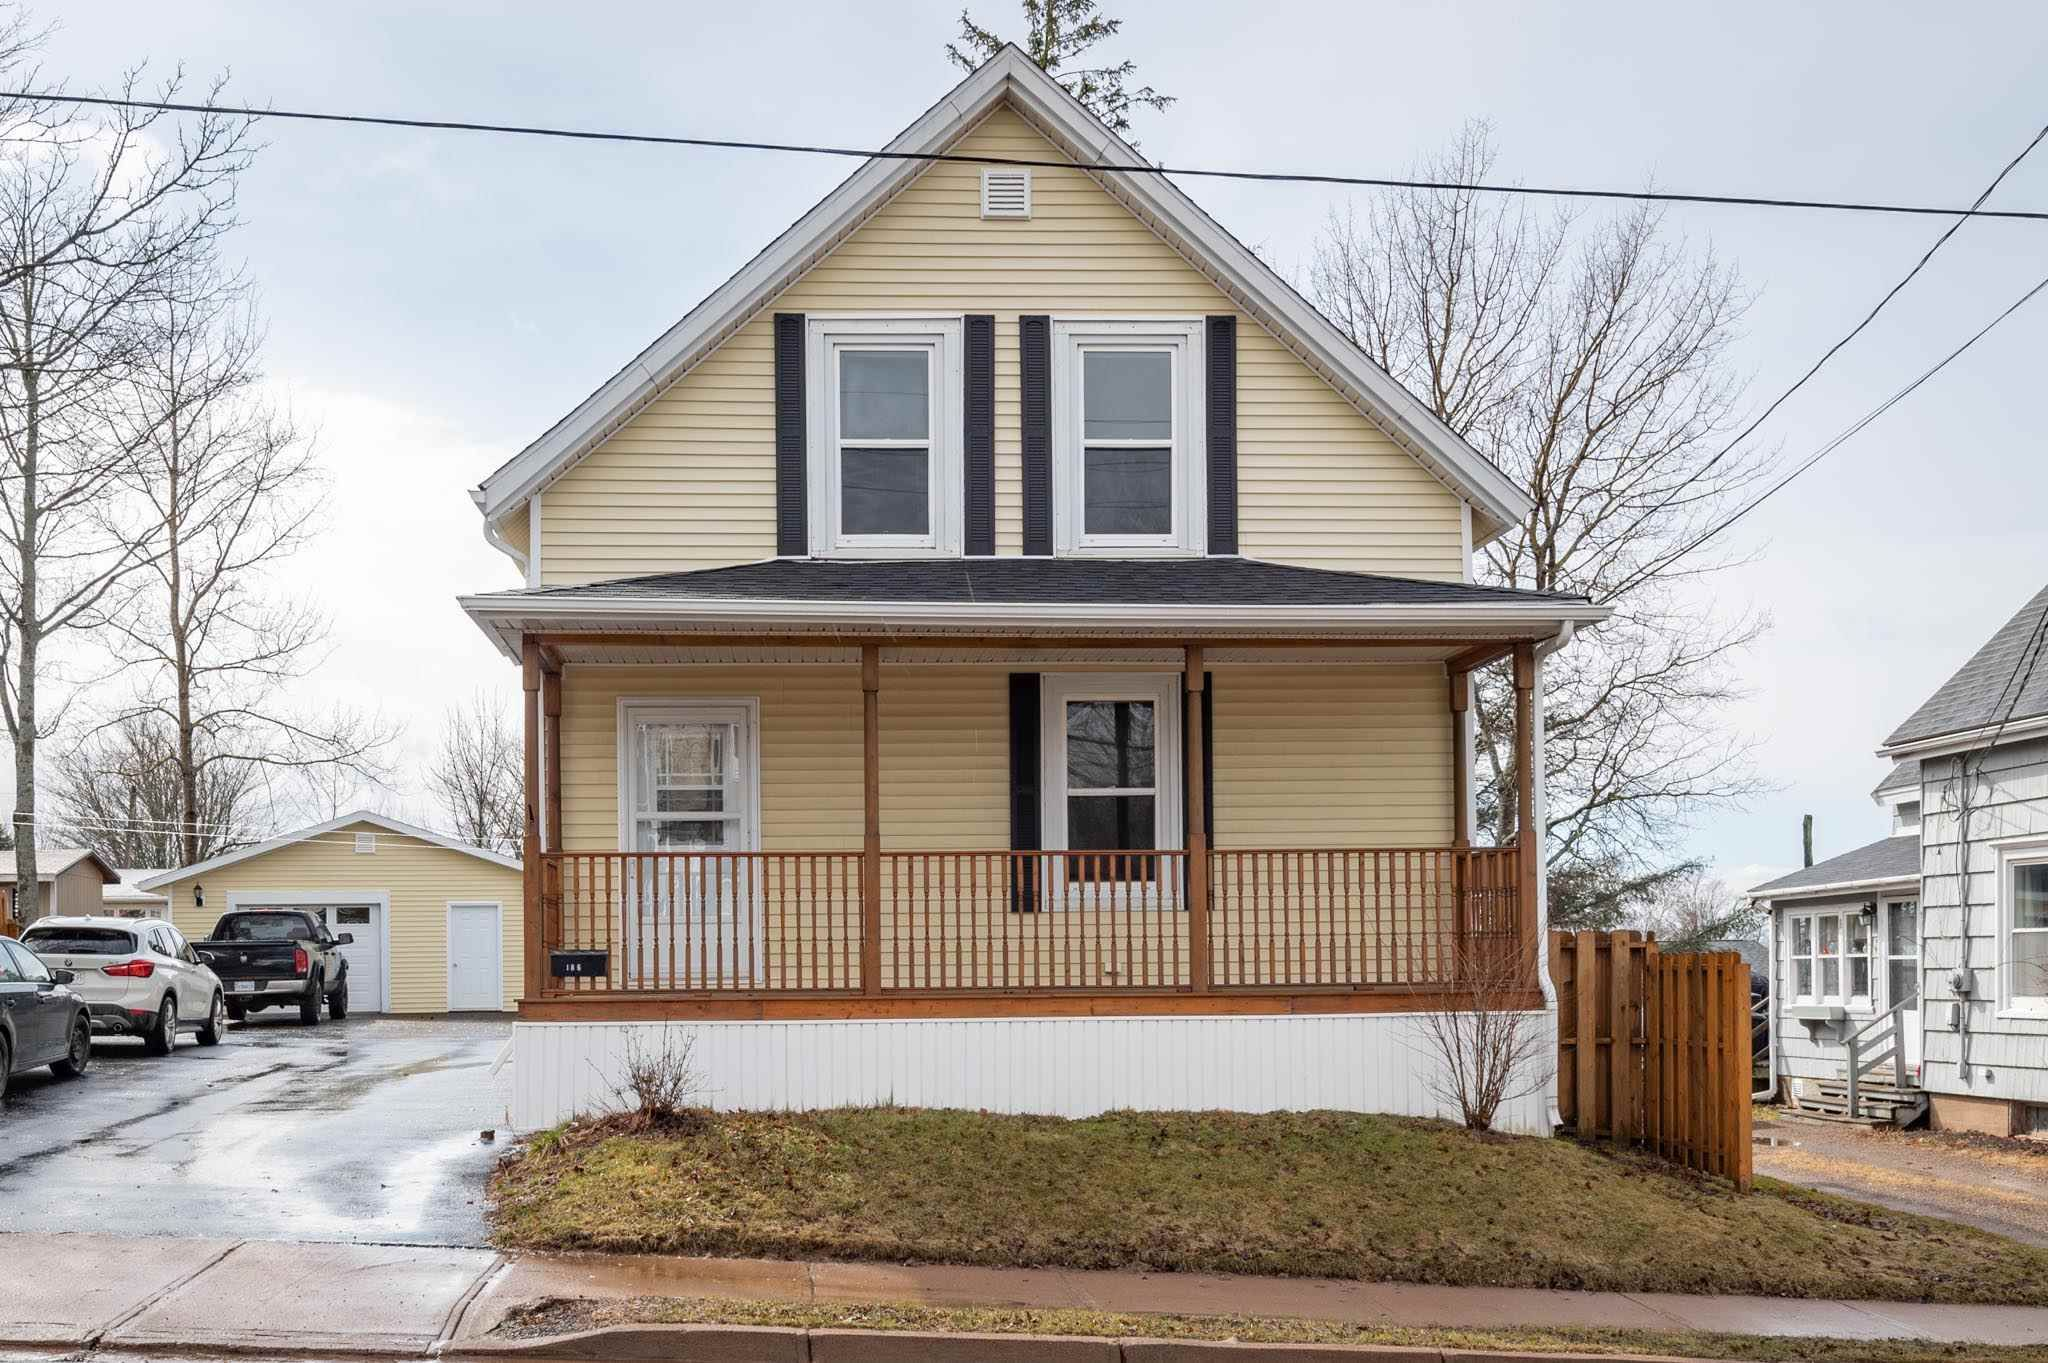 Main Photo: 186 Young Street in Truro: 104-Truro/Bible Hill/Brookfield Residential for sale (Northern Region)  : MLS®# 202107349